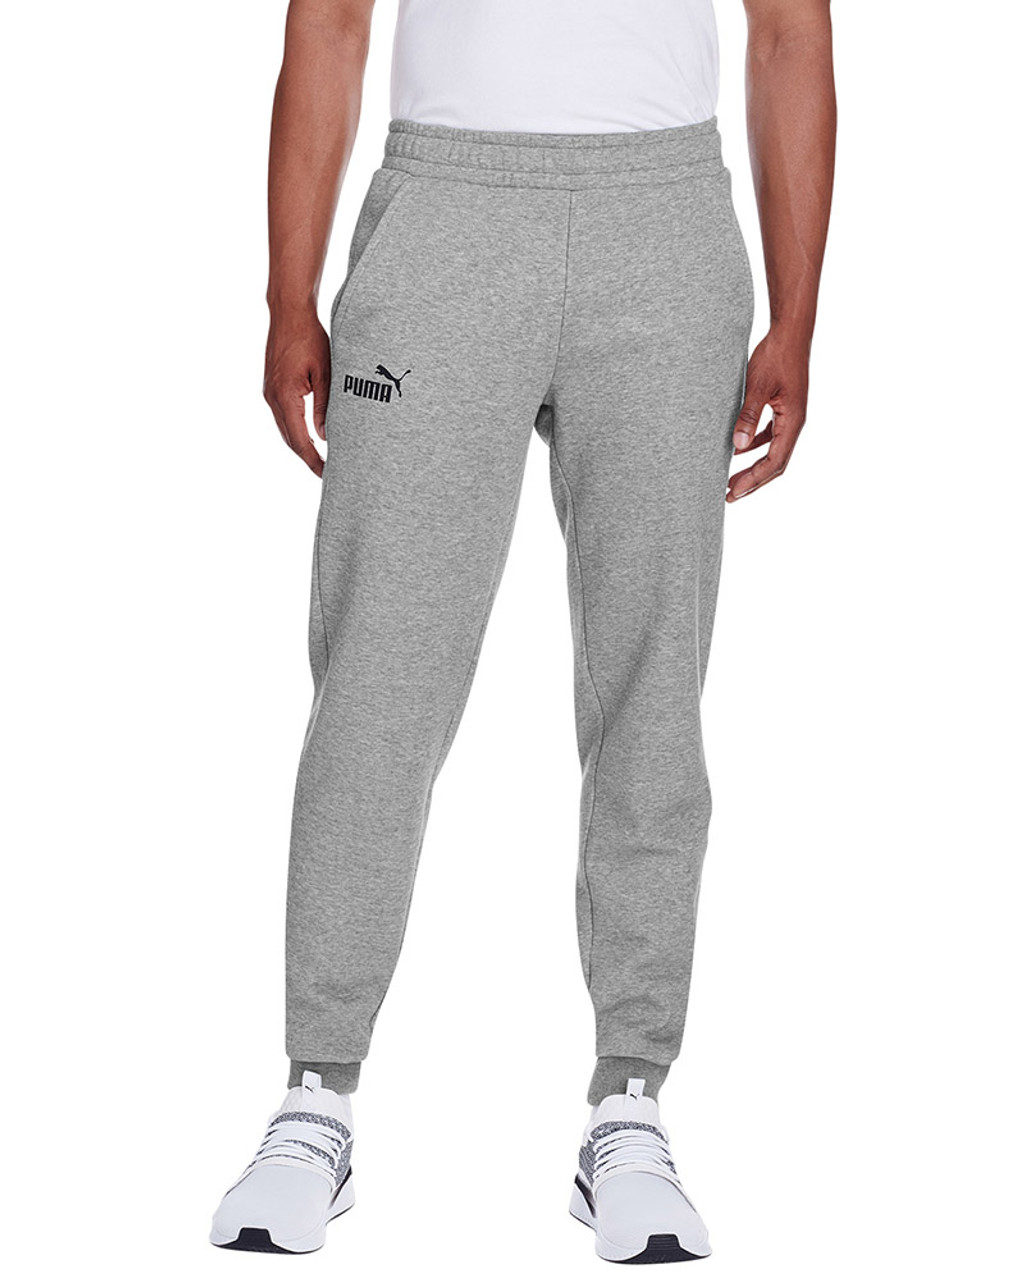 Midnight Grey Heather/Puma Black - 596989 Puma Sport Essential Adult Logo Sweatpant | Blankclothing.ca